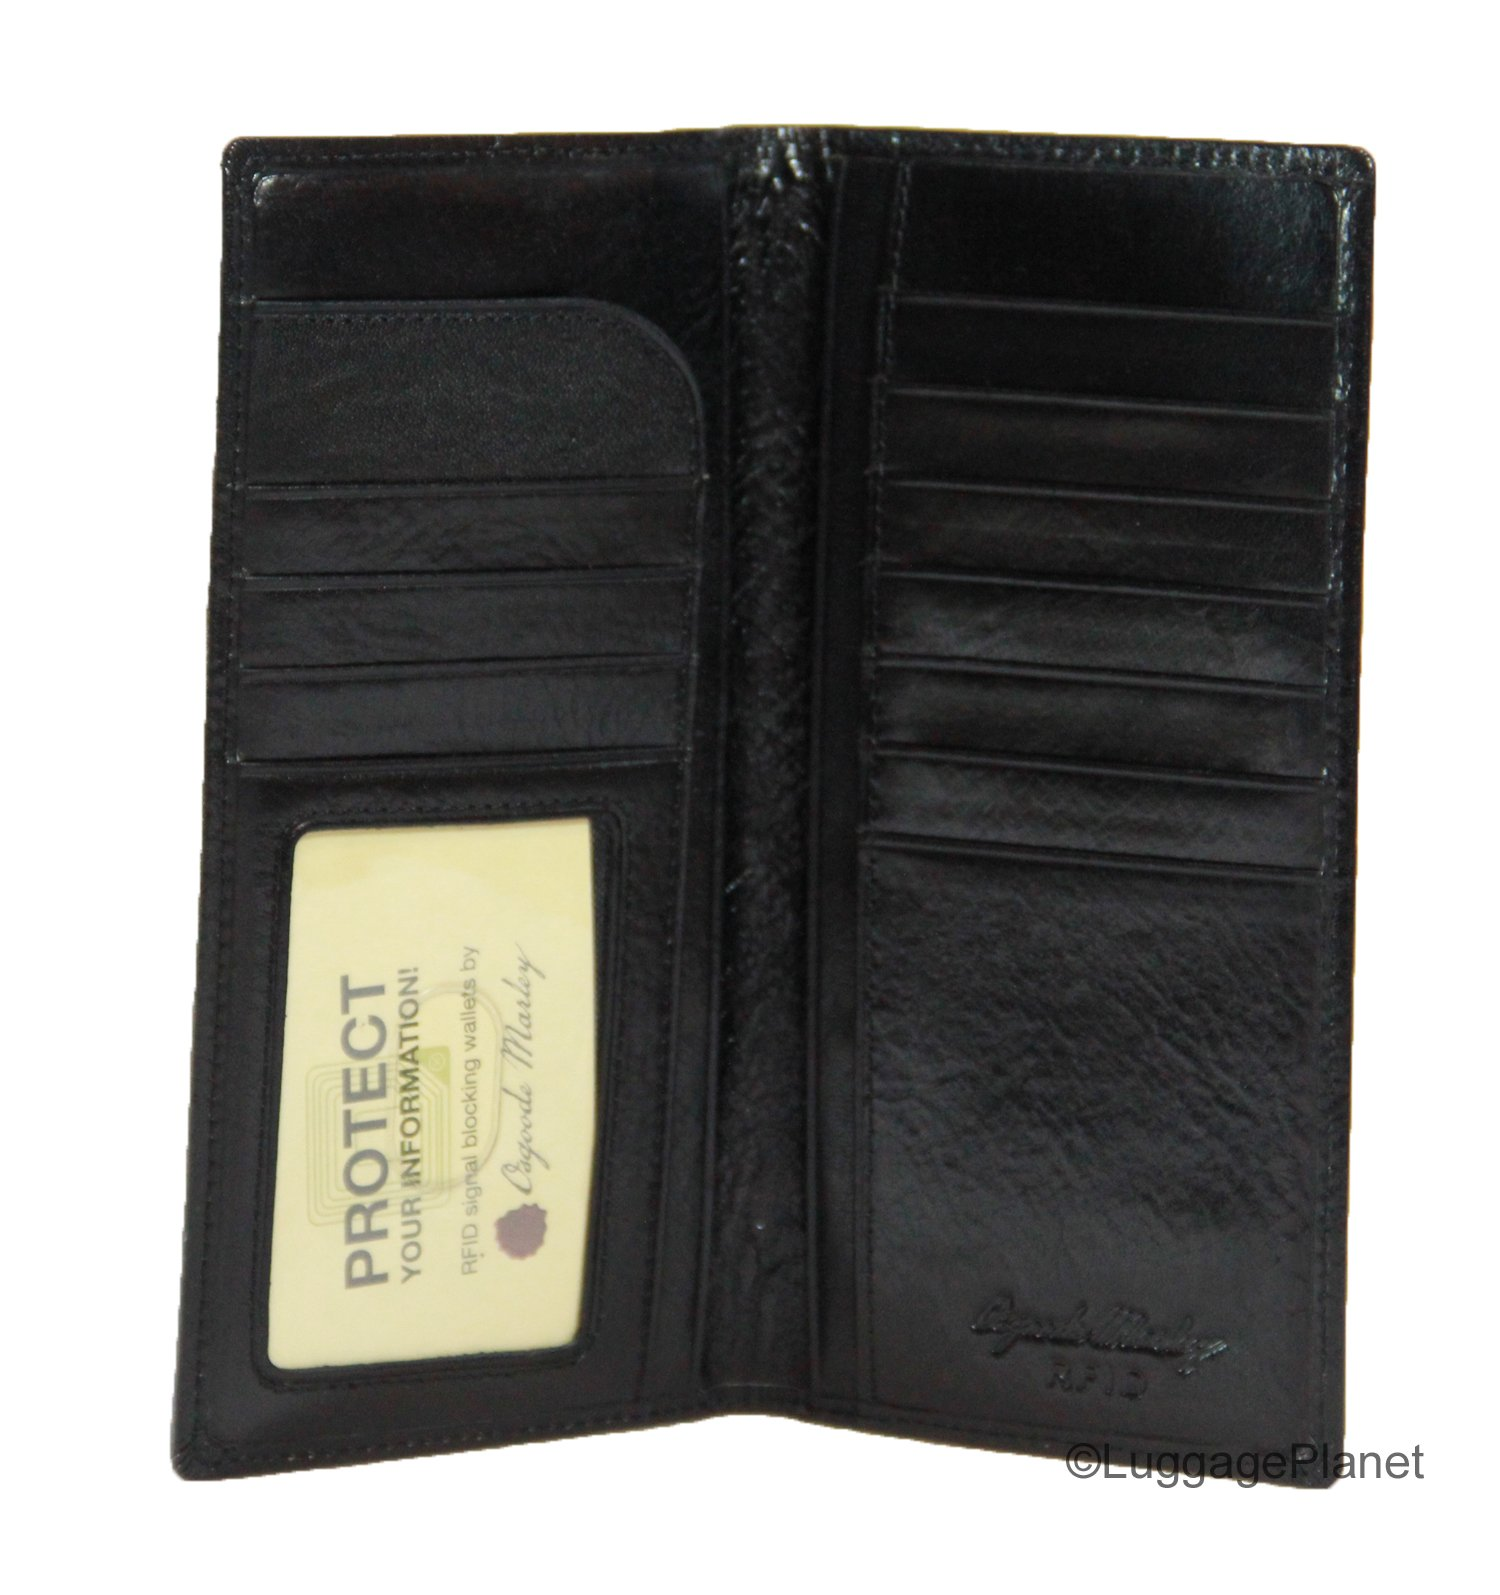 Osgoode Marley Sienna Collection Coat Pocket Mens RFID Leather Wallet (Black)